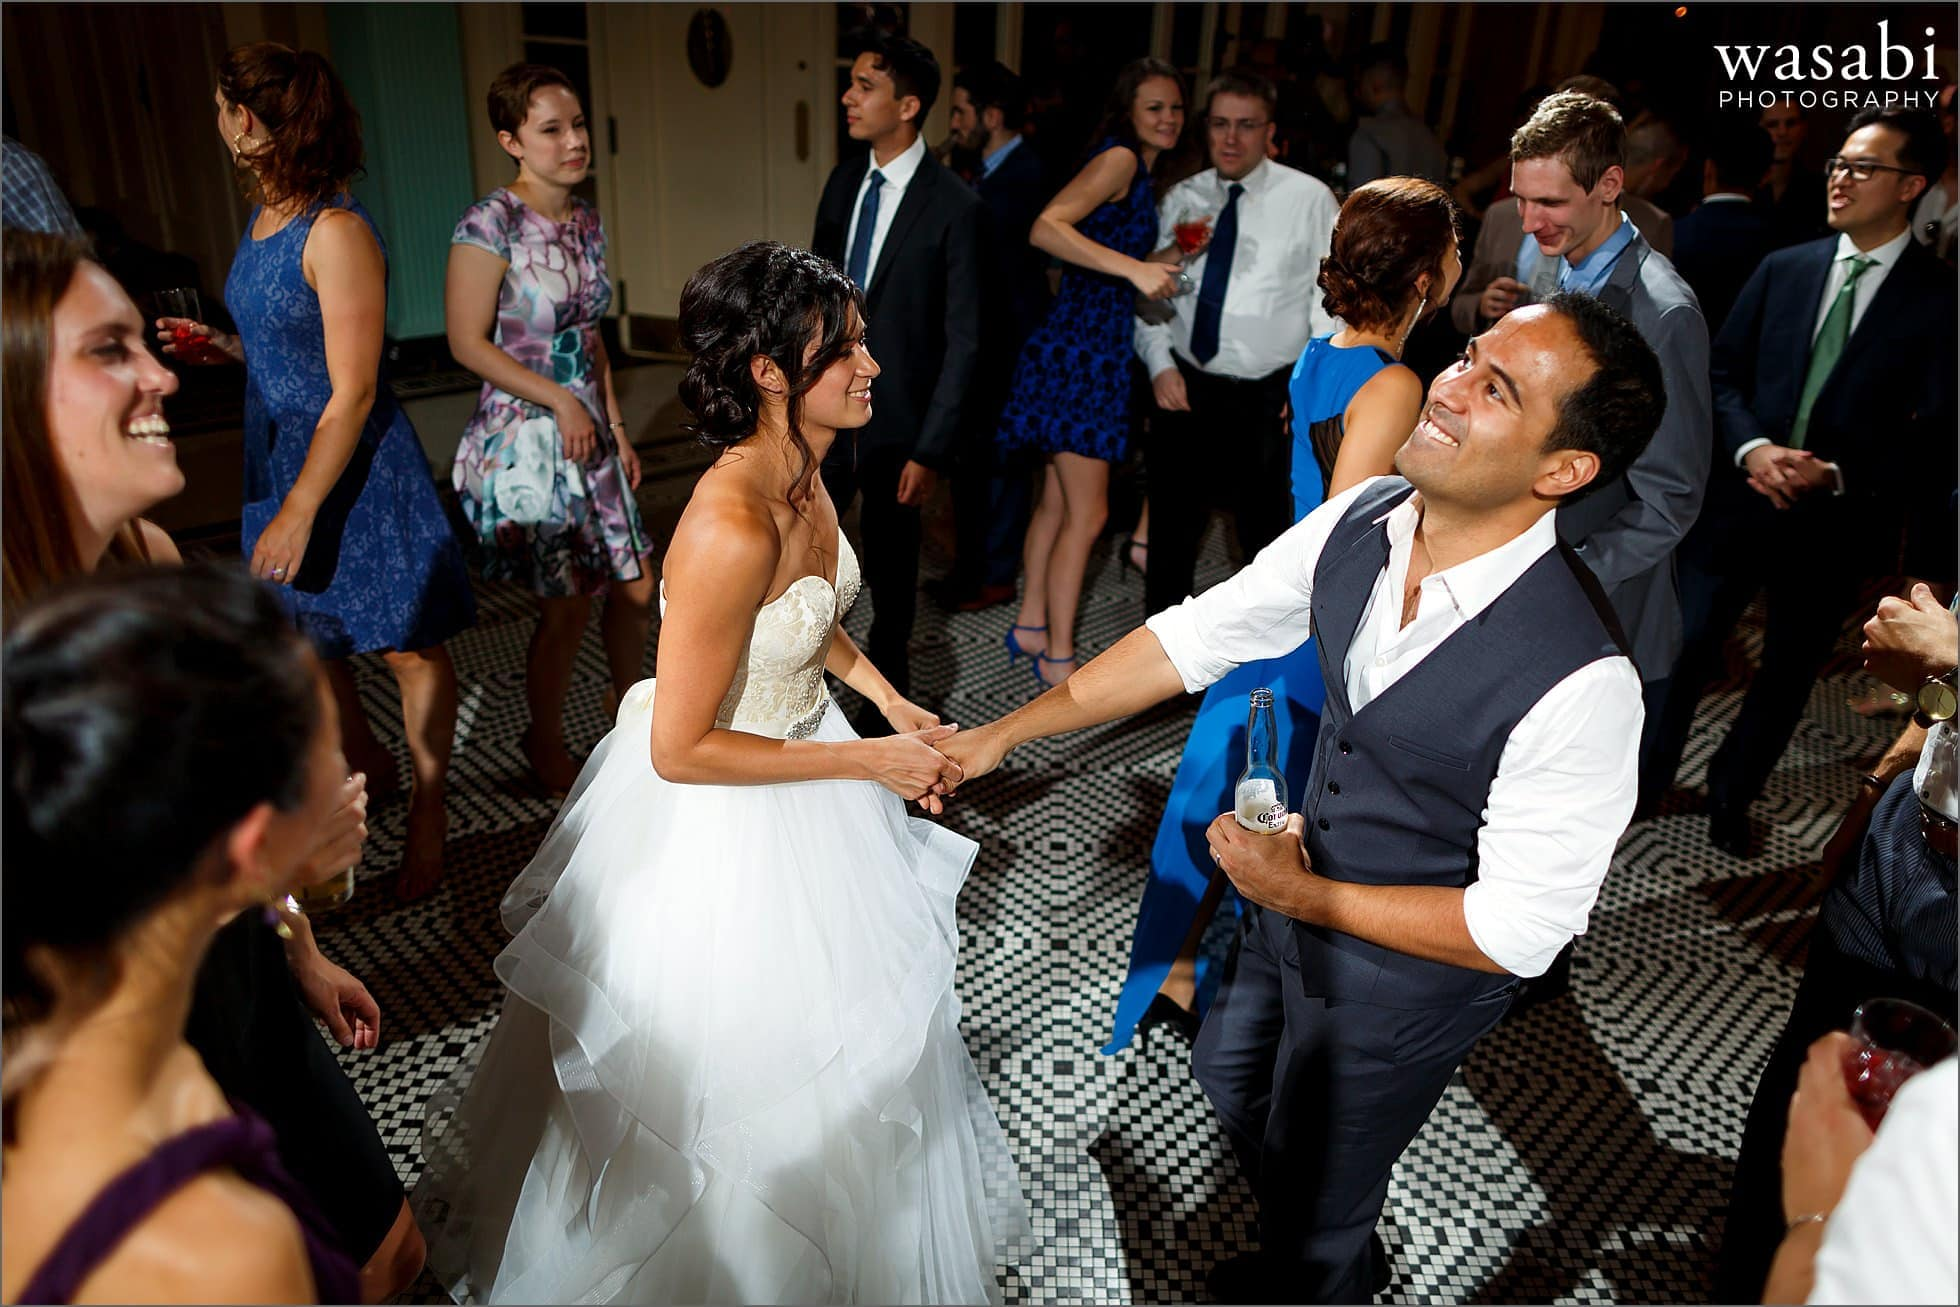 bride and groom dance together in center of guests during South Shore Cultural Center wedding reception